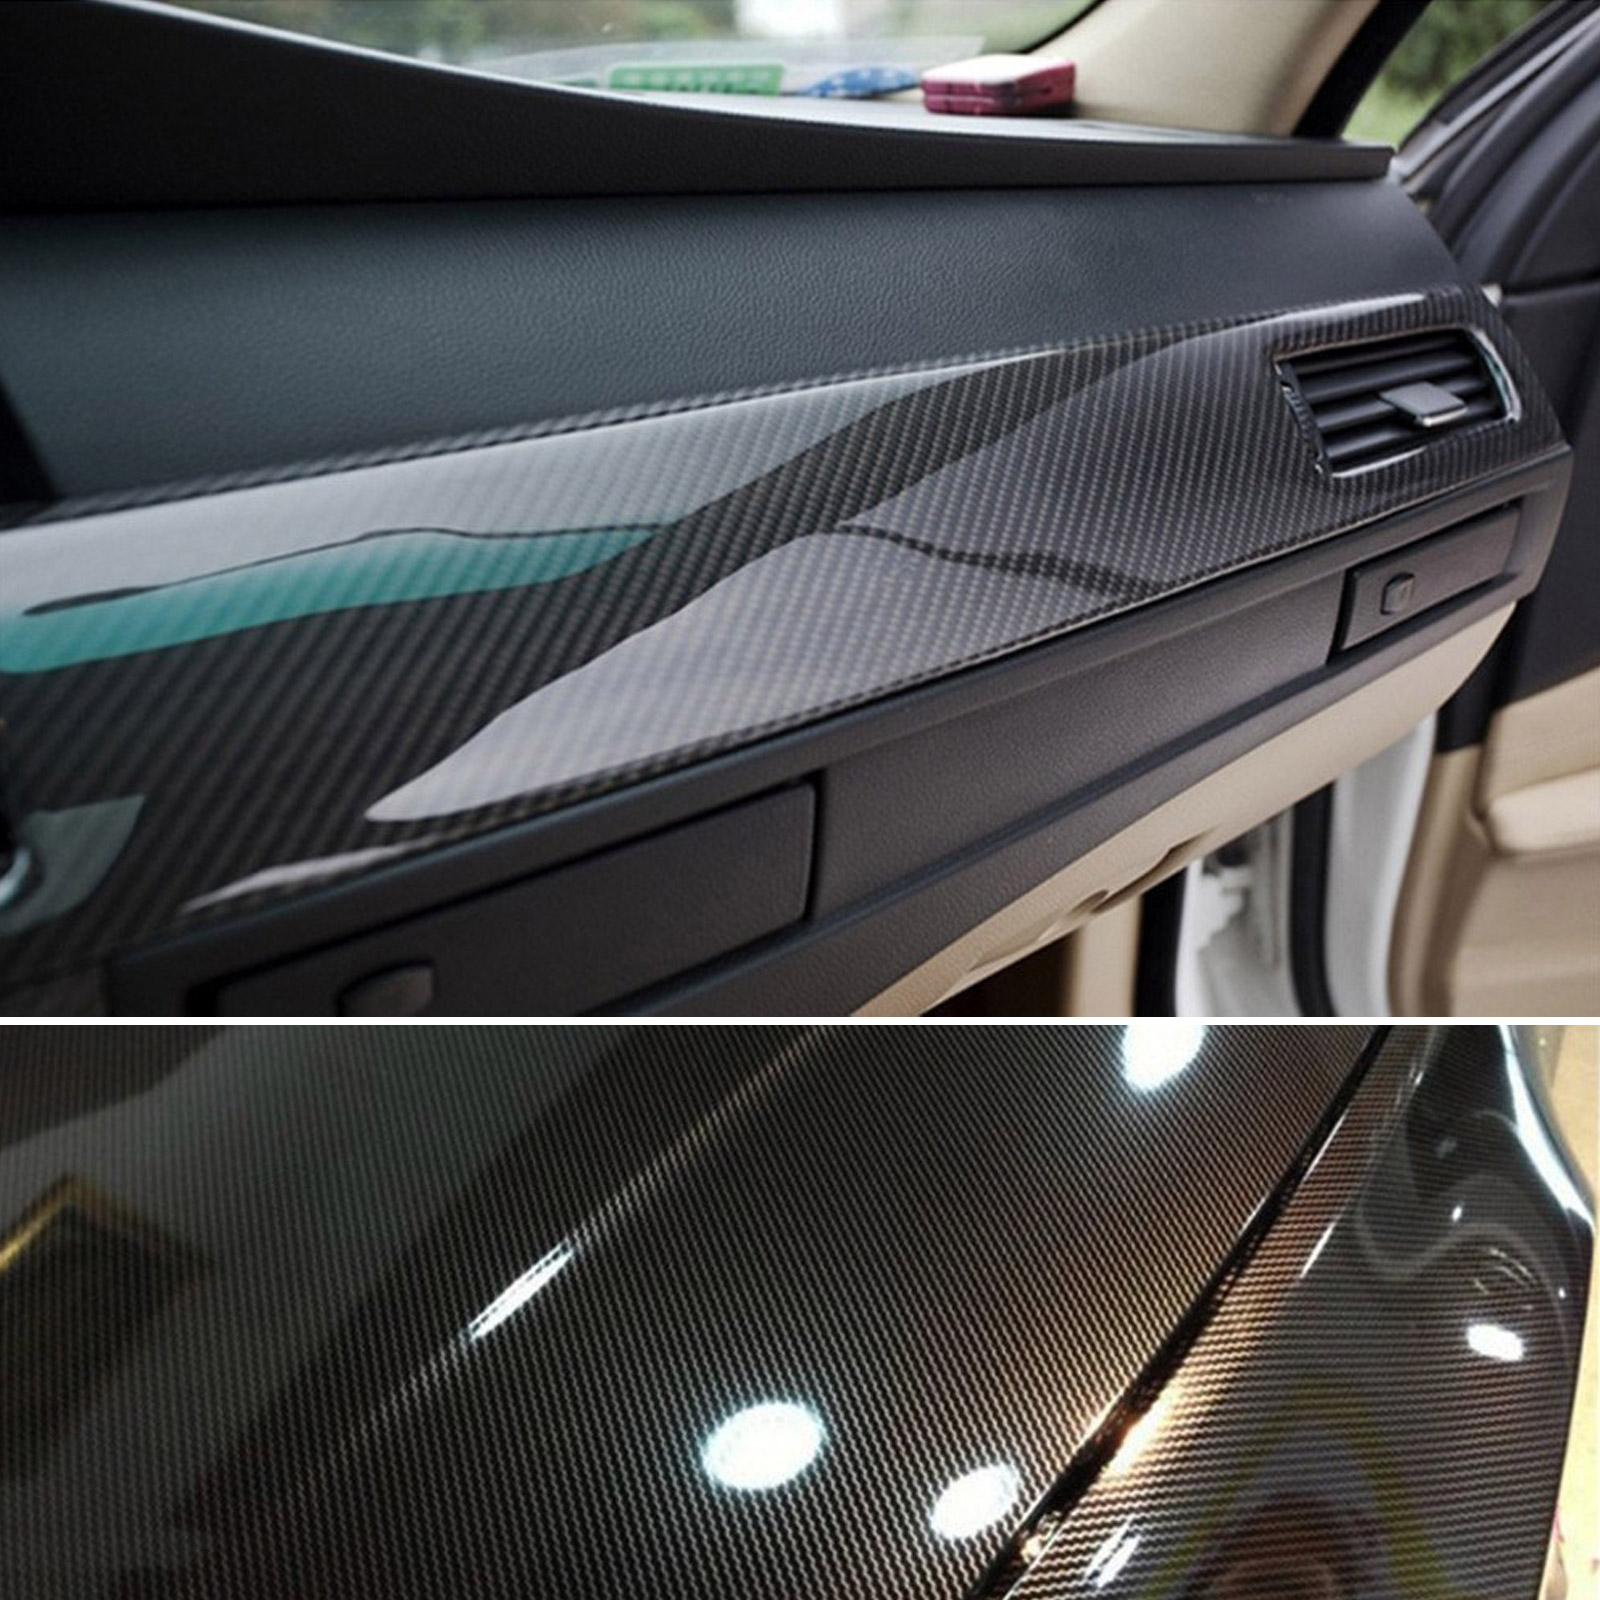 gloss black 5d carbon fiber 50 x 151cm vinyl car phone laptop wrap sticker film ebay. Black Bedroom Furniture Sets. Home Design Ideas